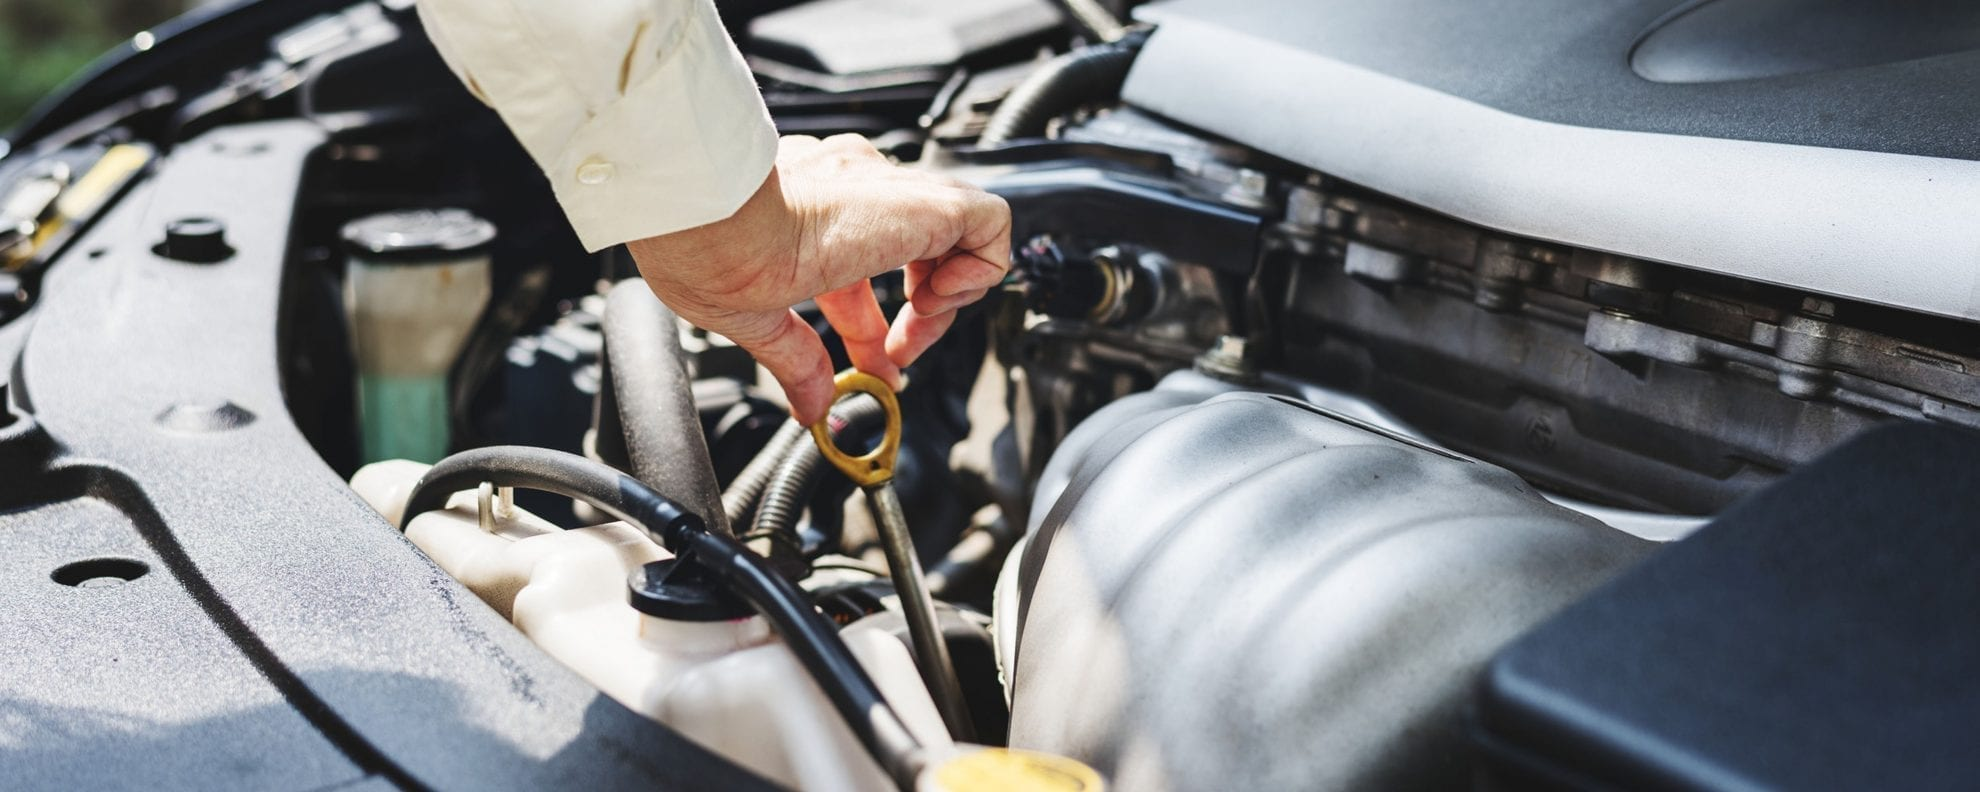 What are the most important things to check on your car frequently?